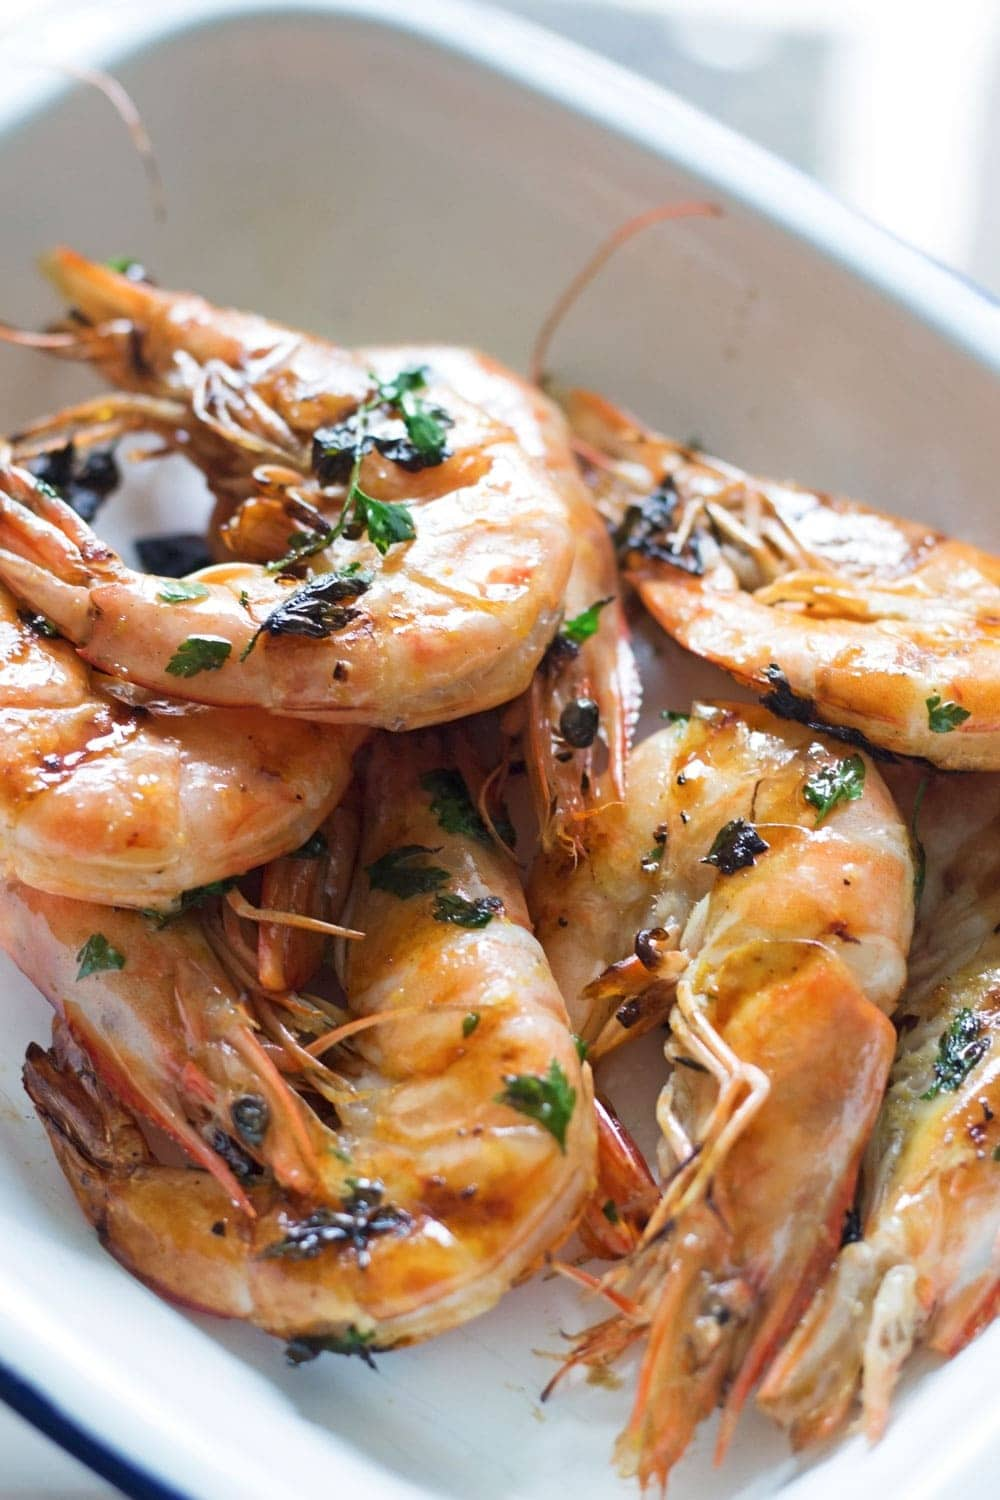 This chilli & garlic prawns recipe is the perfect thing to serve at a summer dinner party! It's quick, simple and is guaranteed to impress.